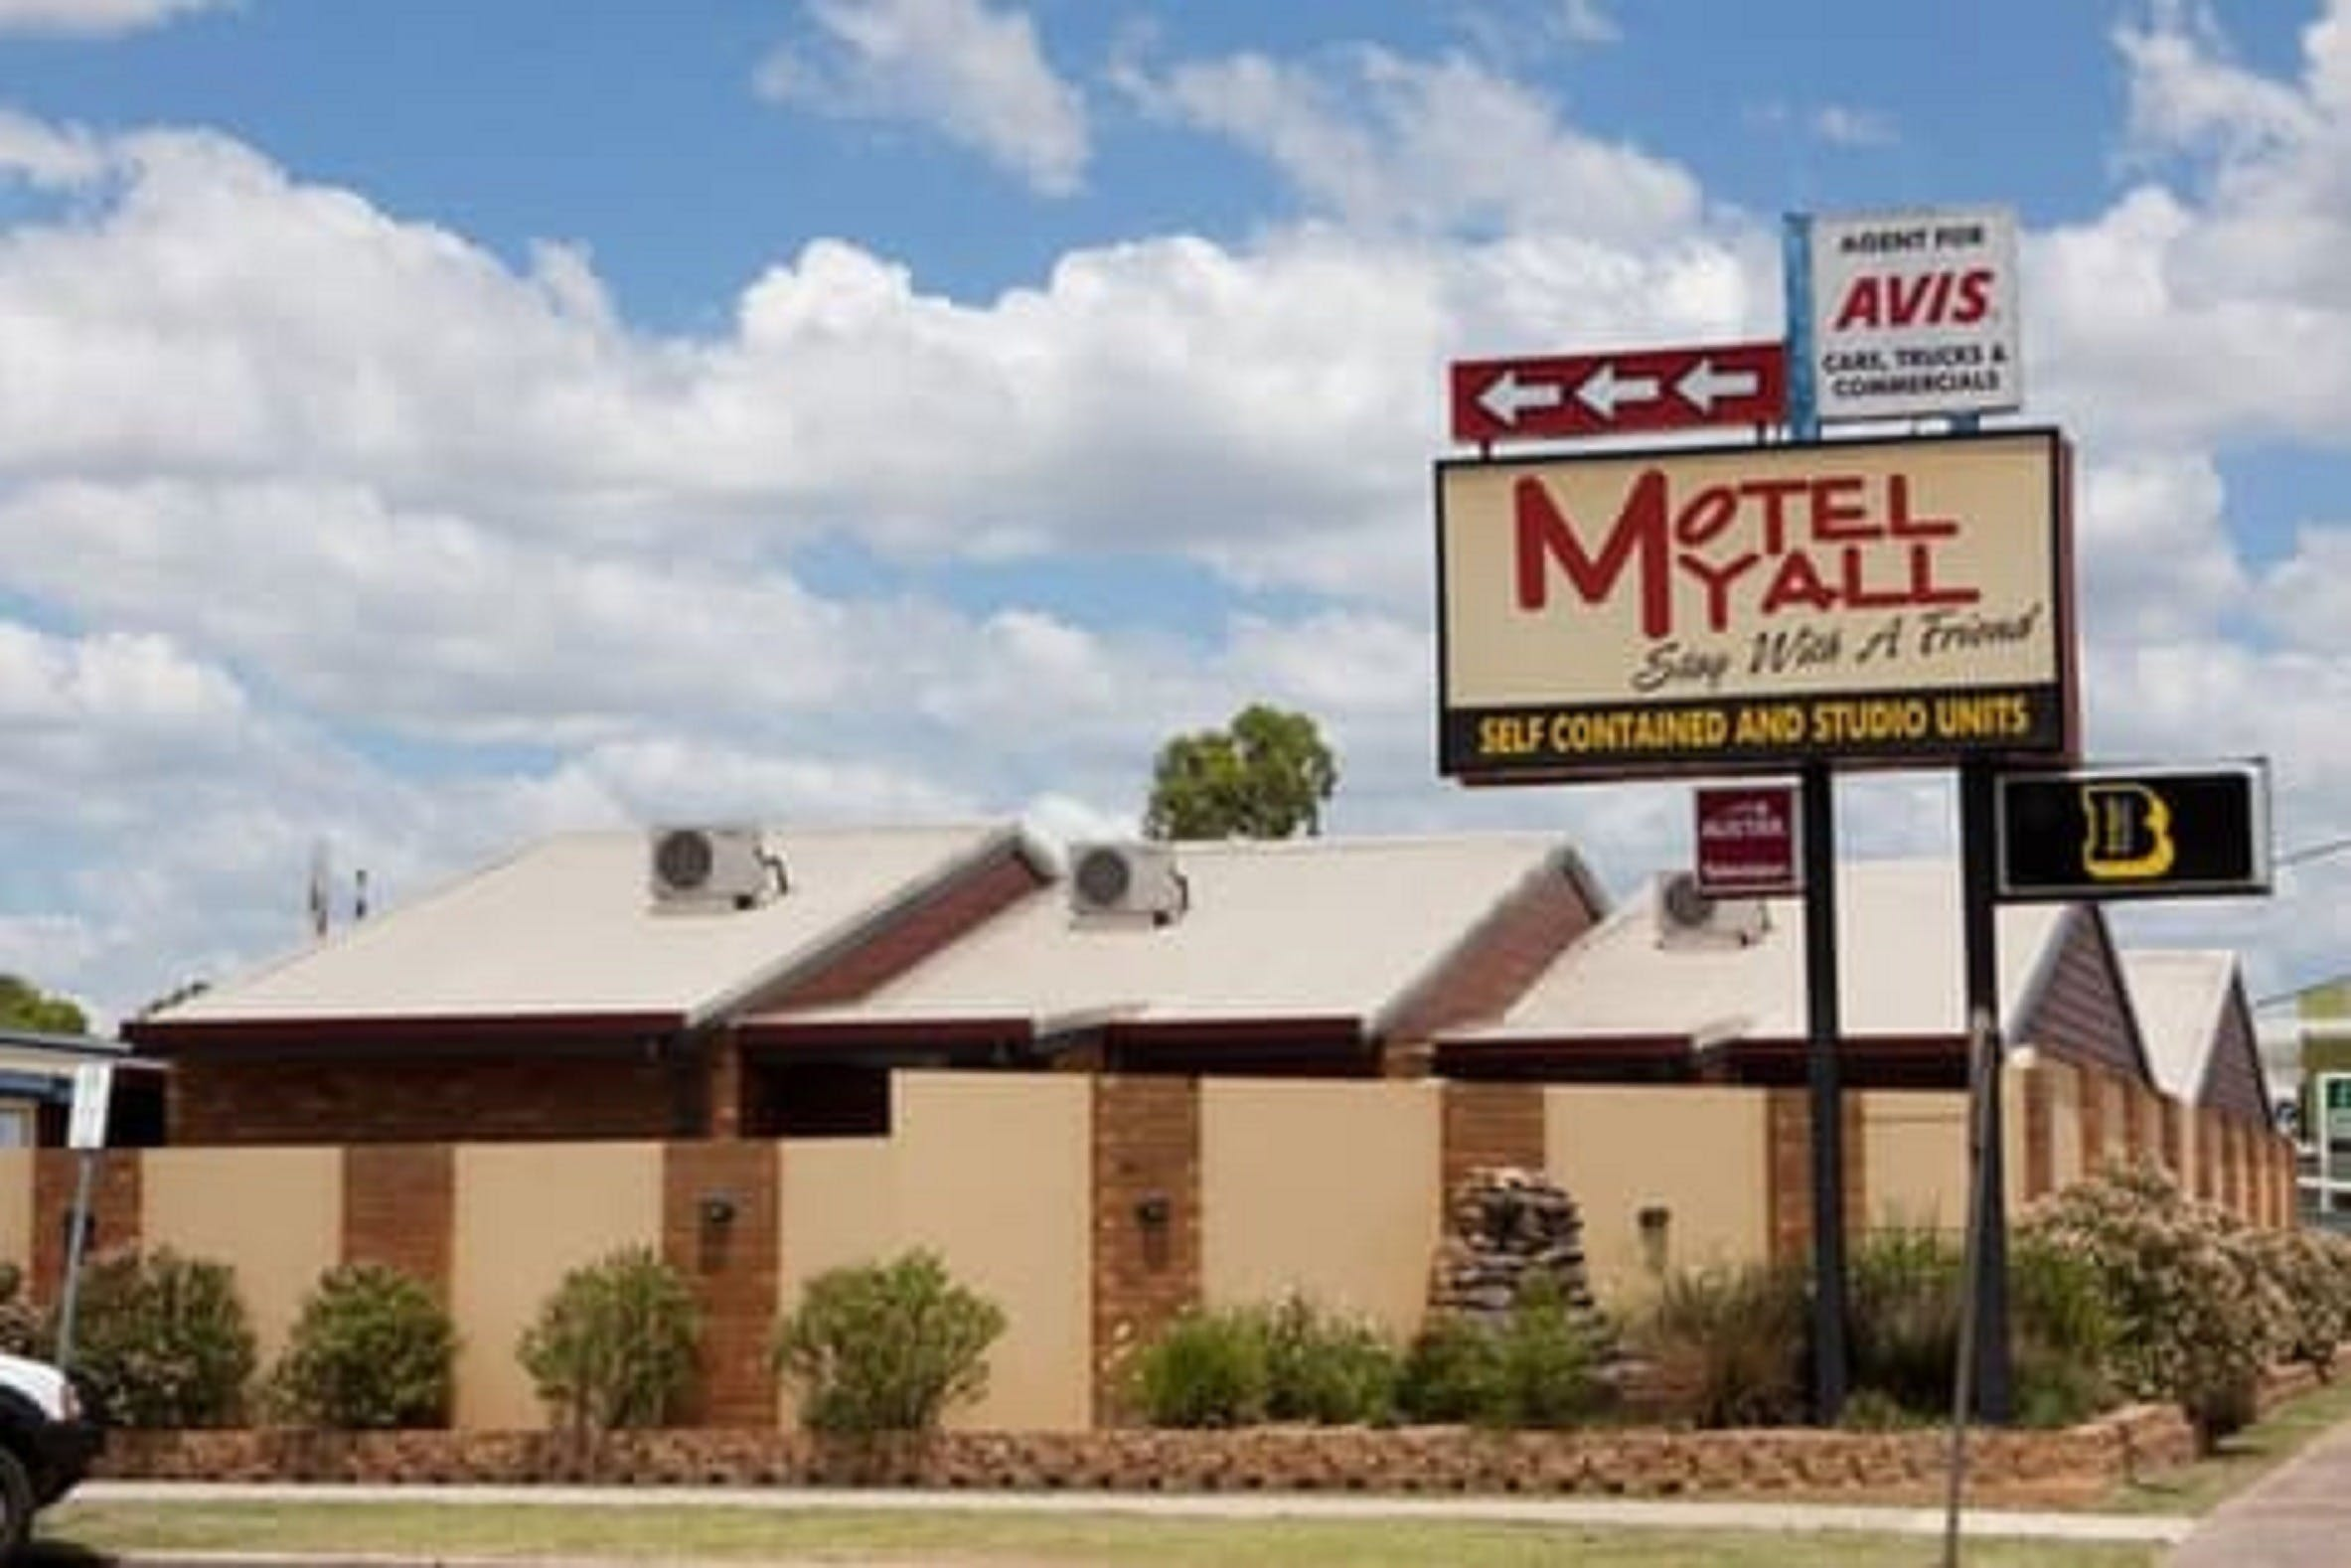 Motel Myall - Townsville Tourism